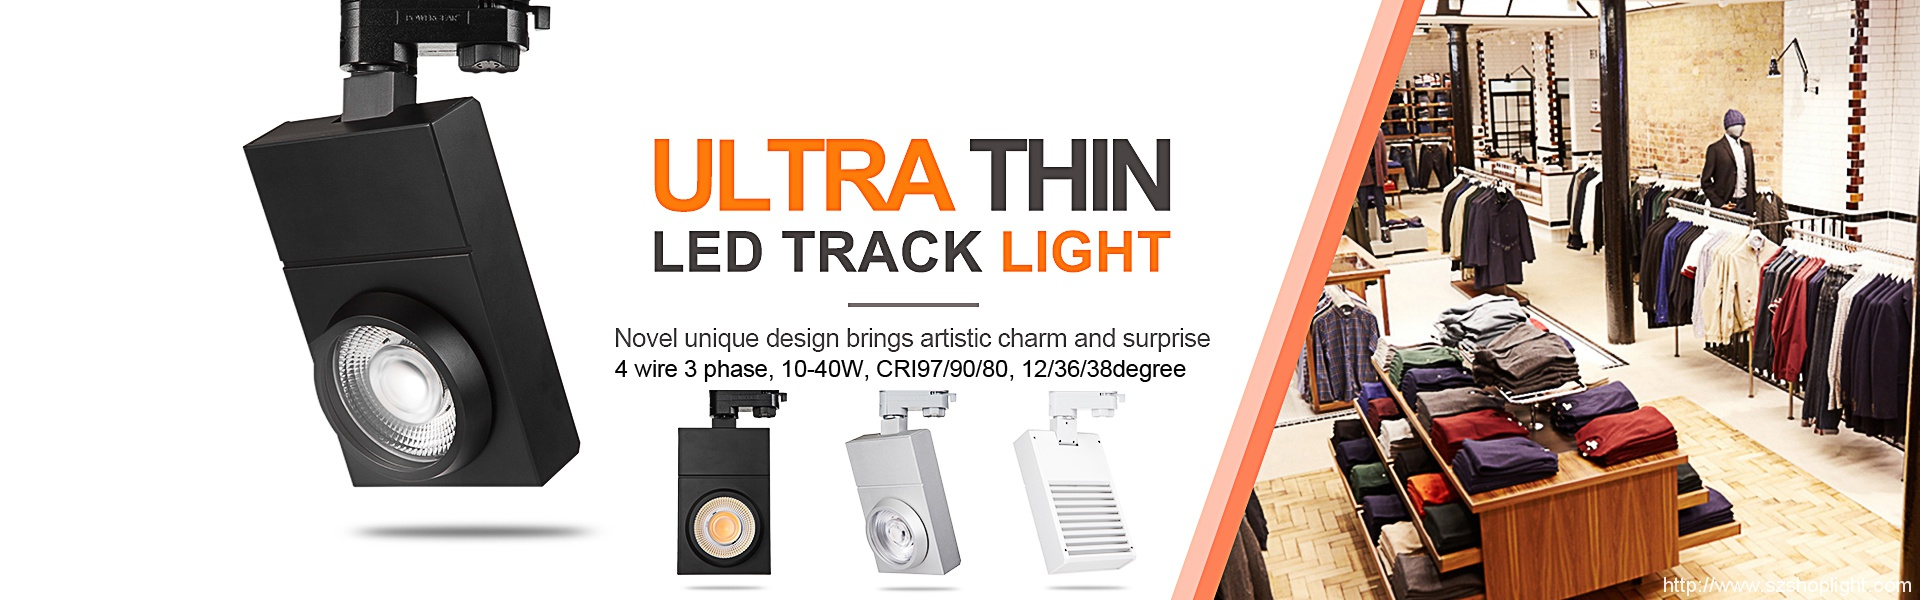 square led track light banner